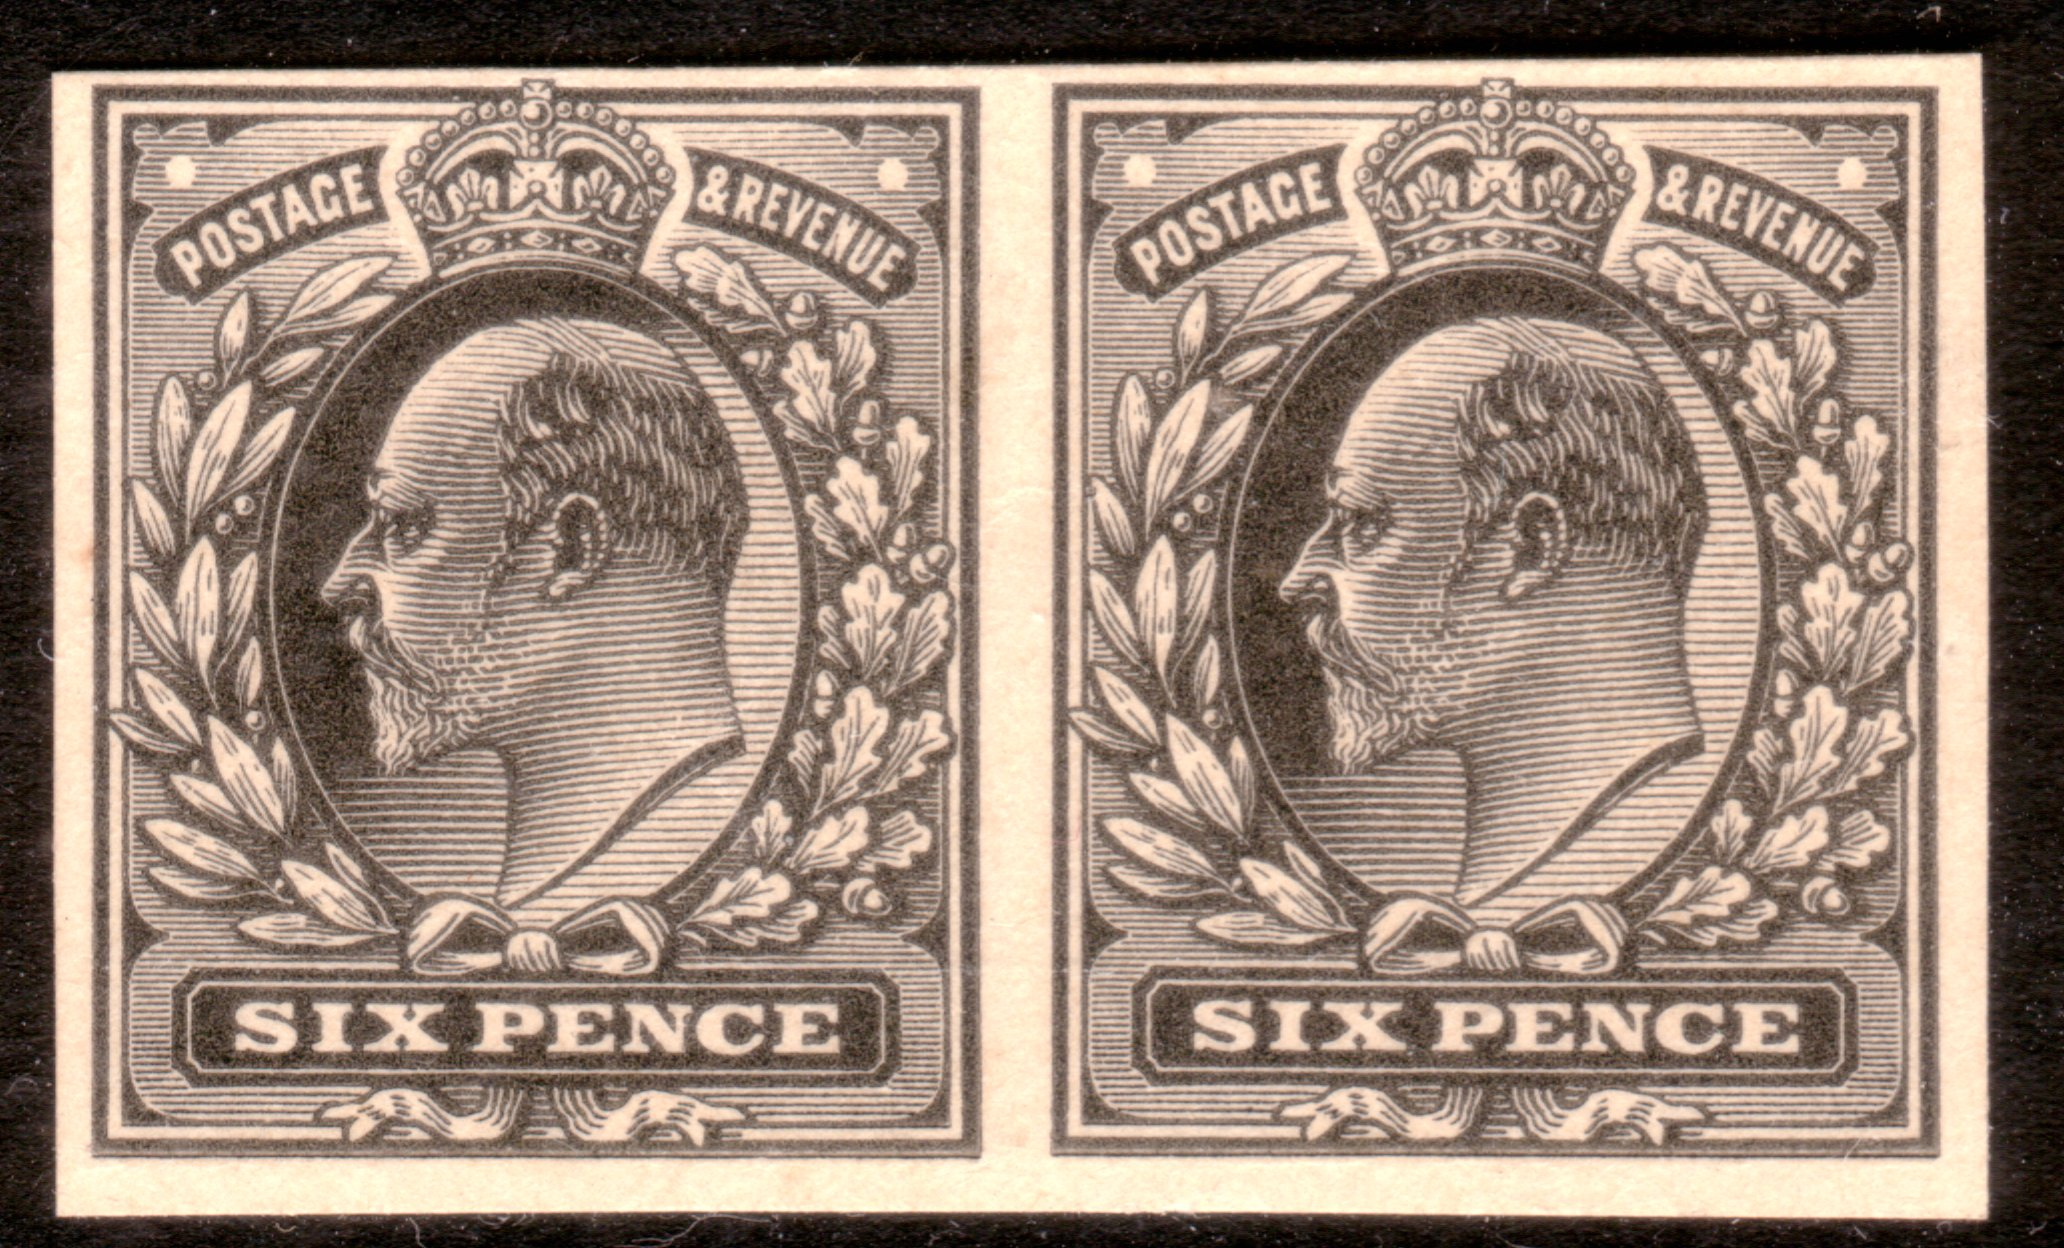 1902 6d Plate Proof Pair - SOLD